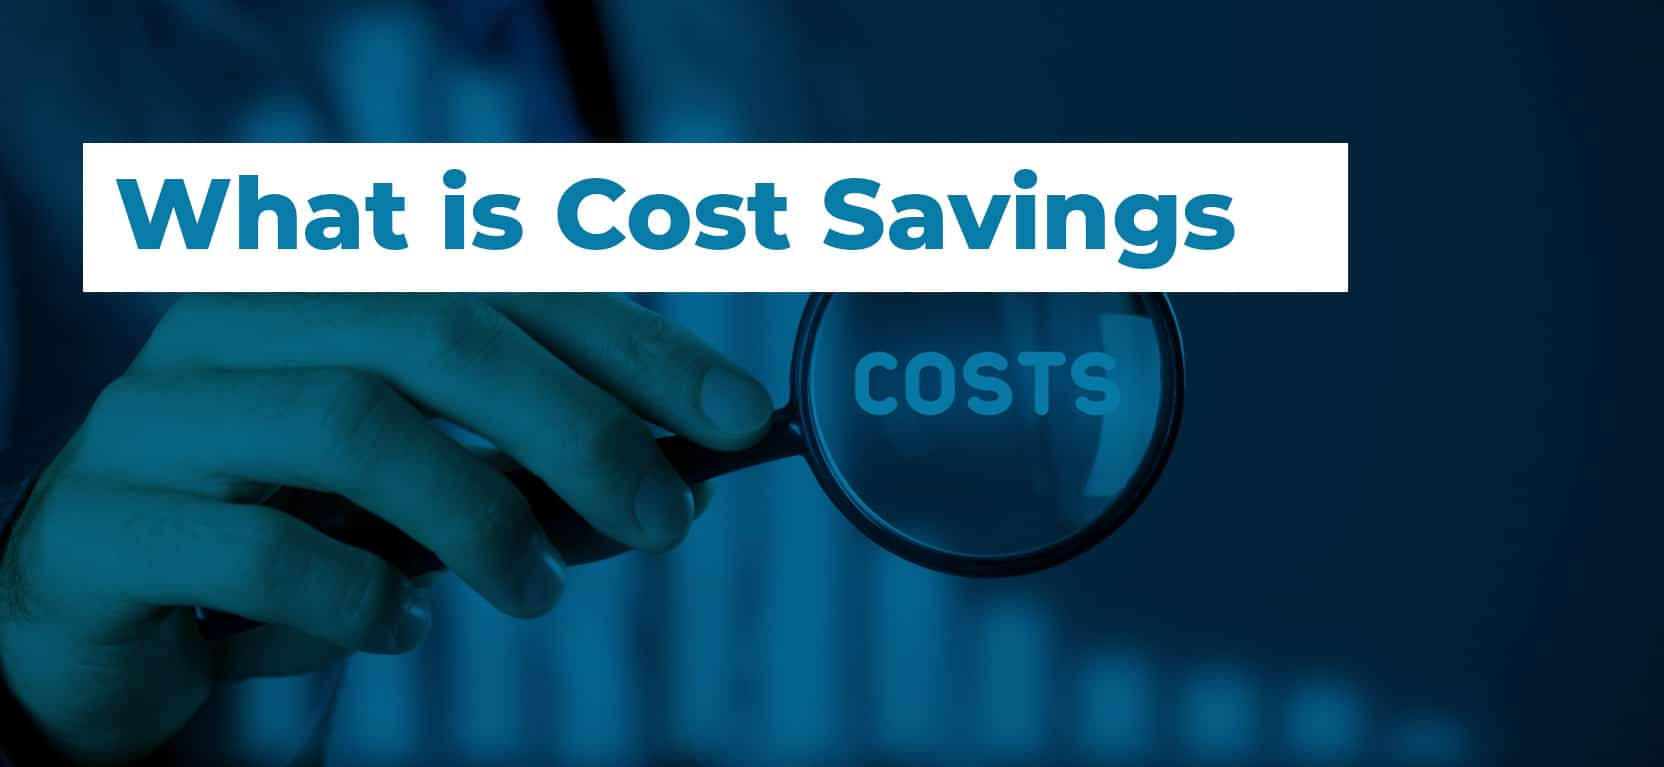 09 What is Cost Savings3